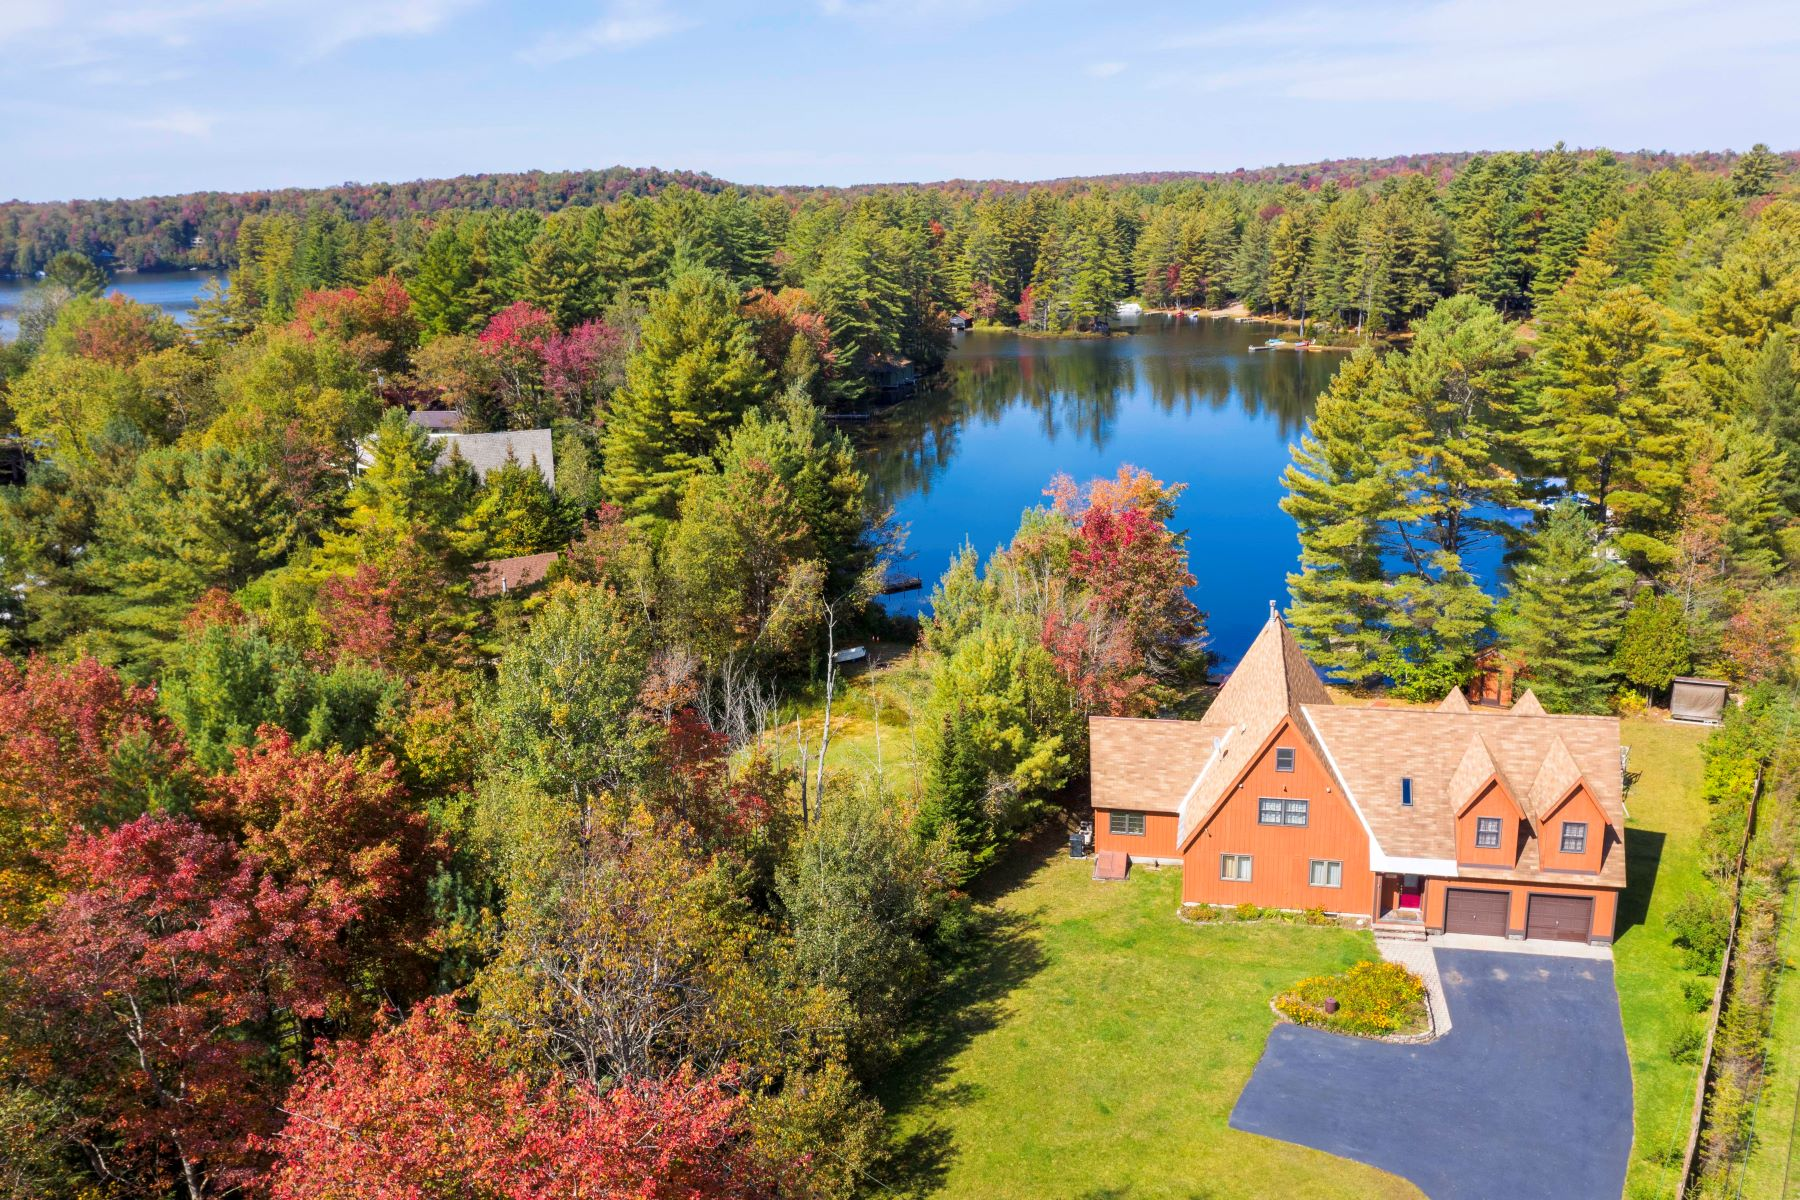 Single Family Homes for Active at Luxury Lakefront on the Sandy Shores of White Lake 12771 NYS Rt. 28 Woodgate, New York 13494 United States